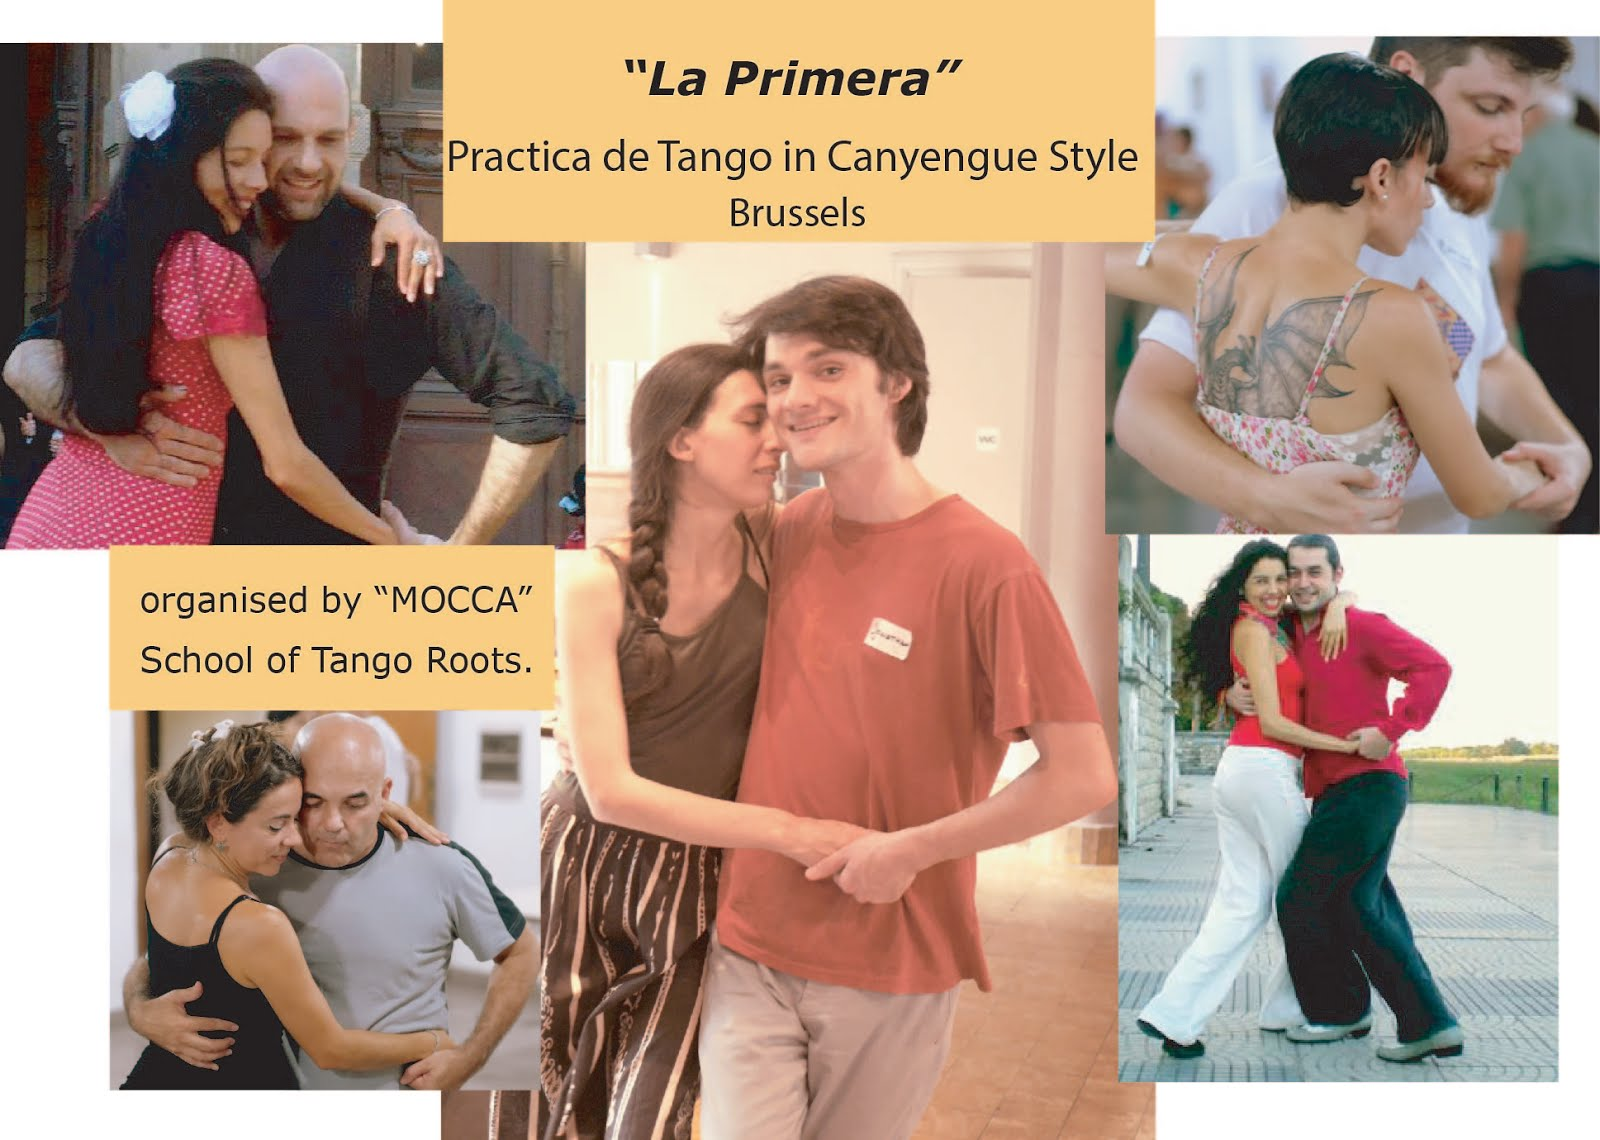 workshop & Practica of Tango in Canyengue Style